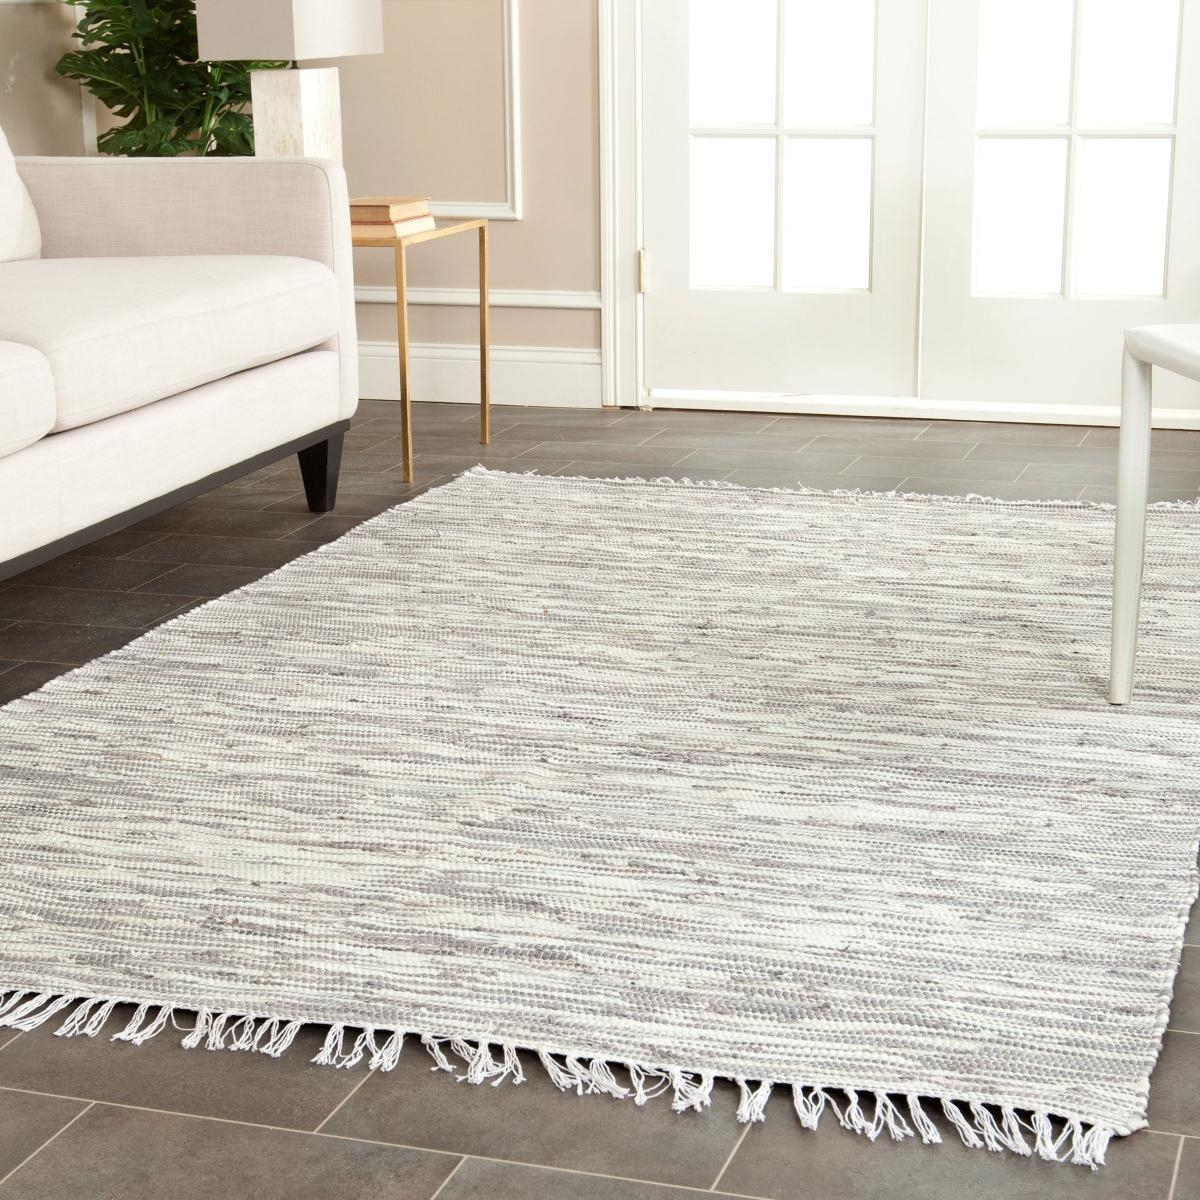 Rug Mtk753a Montauk Area Rugs Safavieh Pertaining To Flat Weave Wool Area Rugs (#13 of 15)